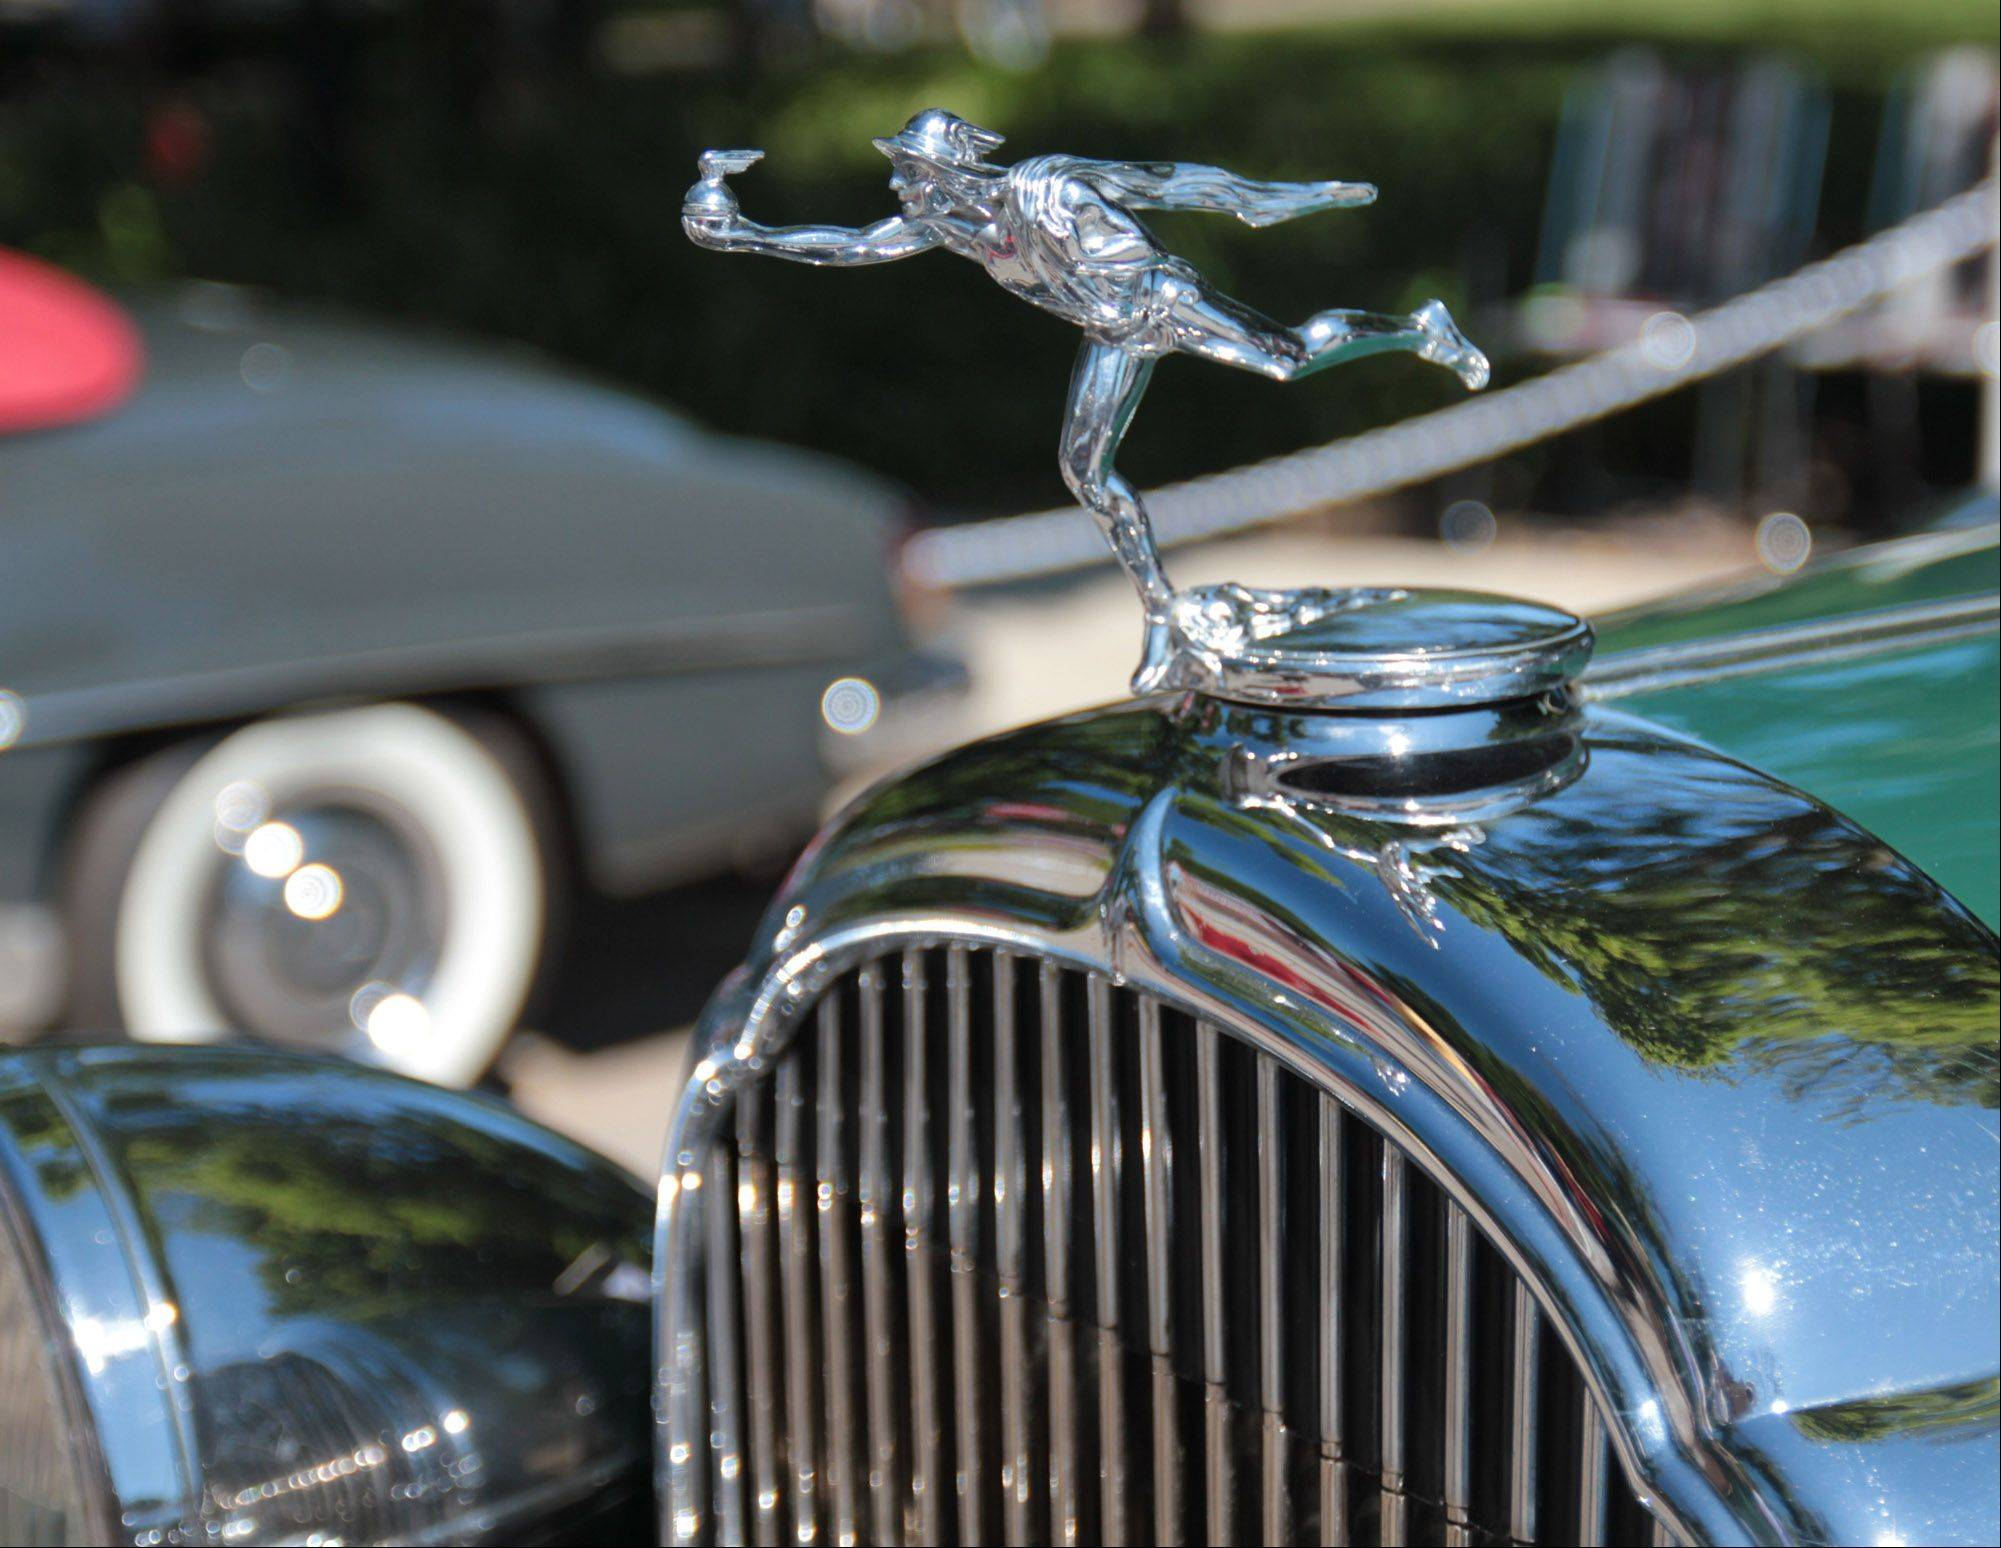 A photo of an auto detail taken at the Geneva Concours d'Elegance in Geneva, IL.